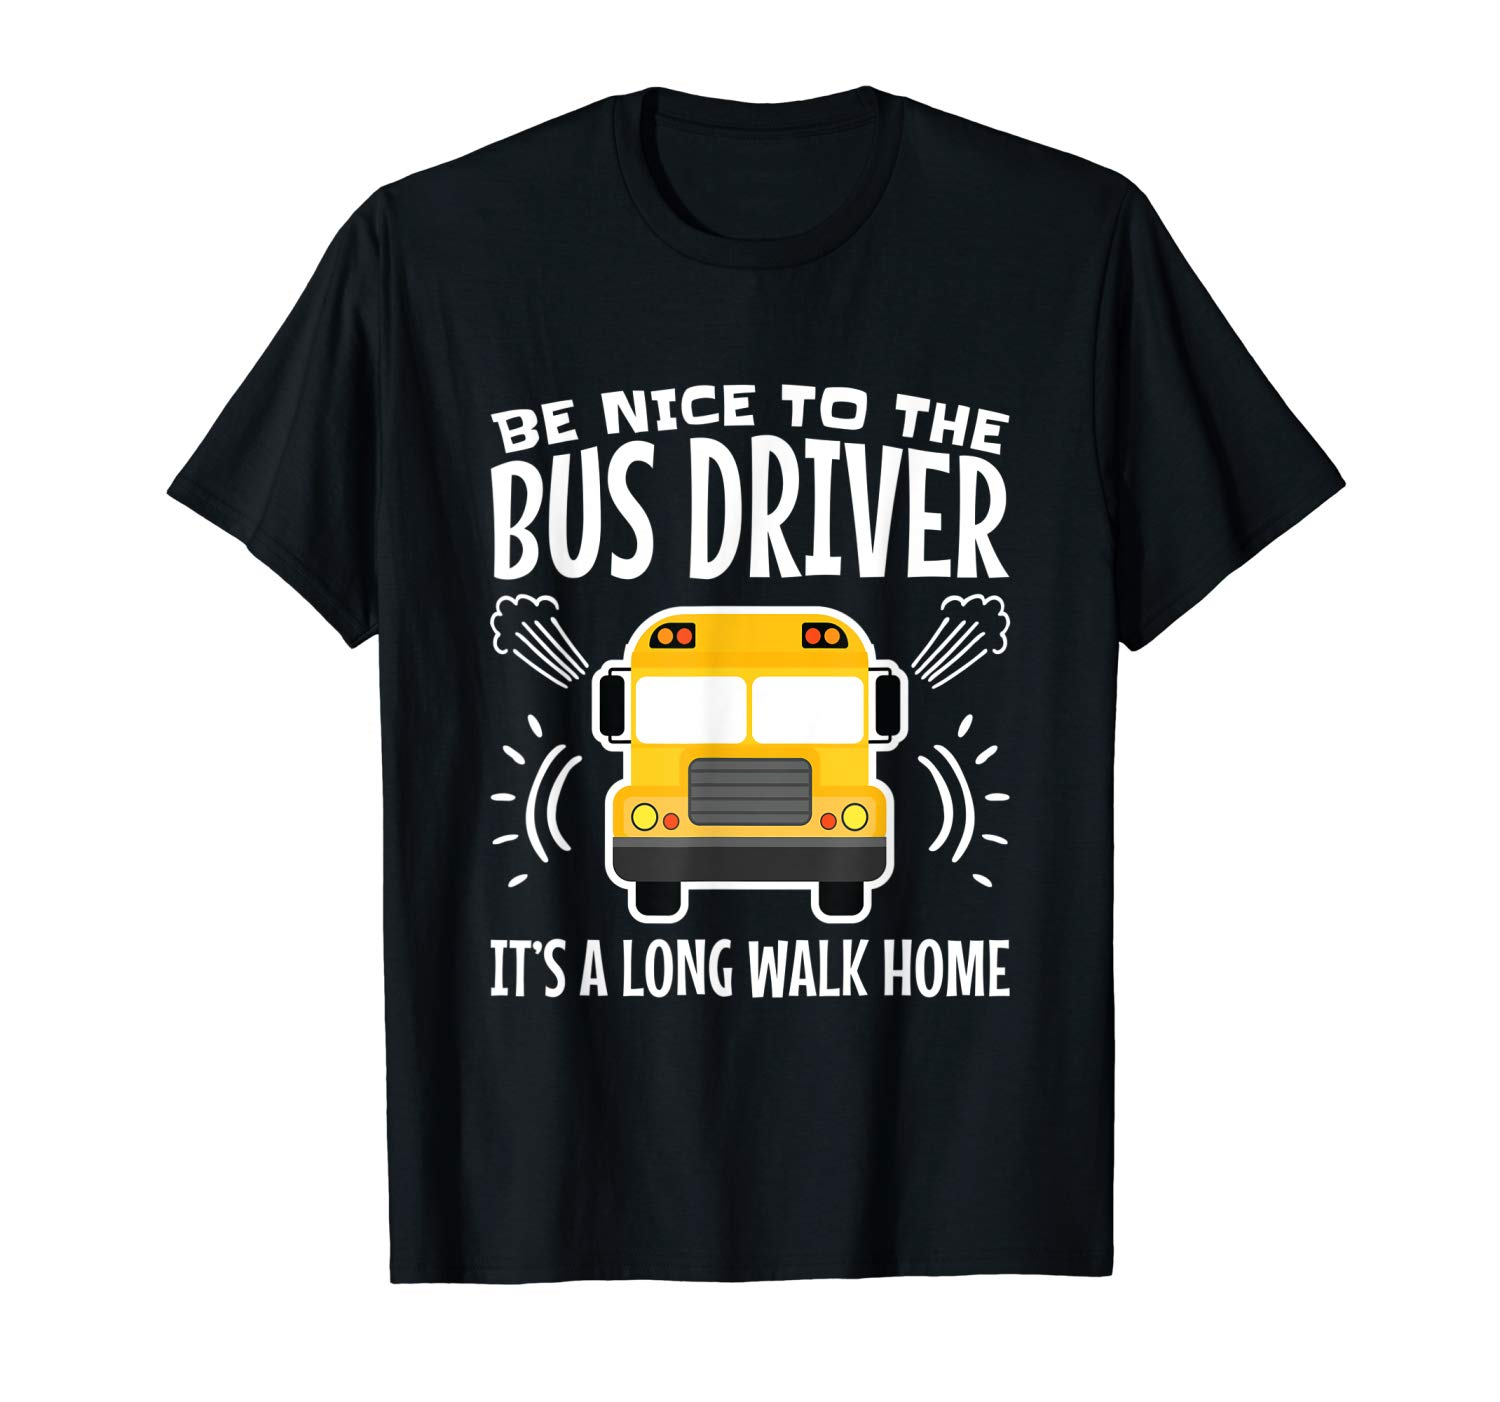 Bus Driver Gift Ideas - A t shirt